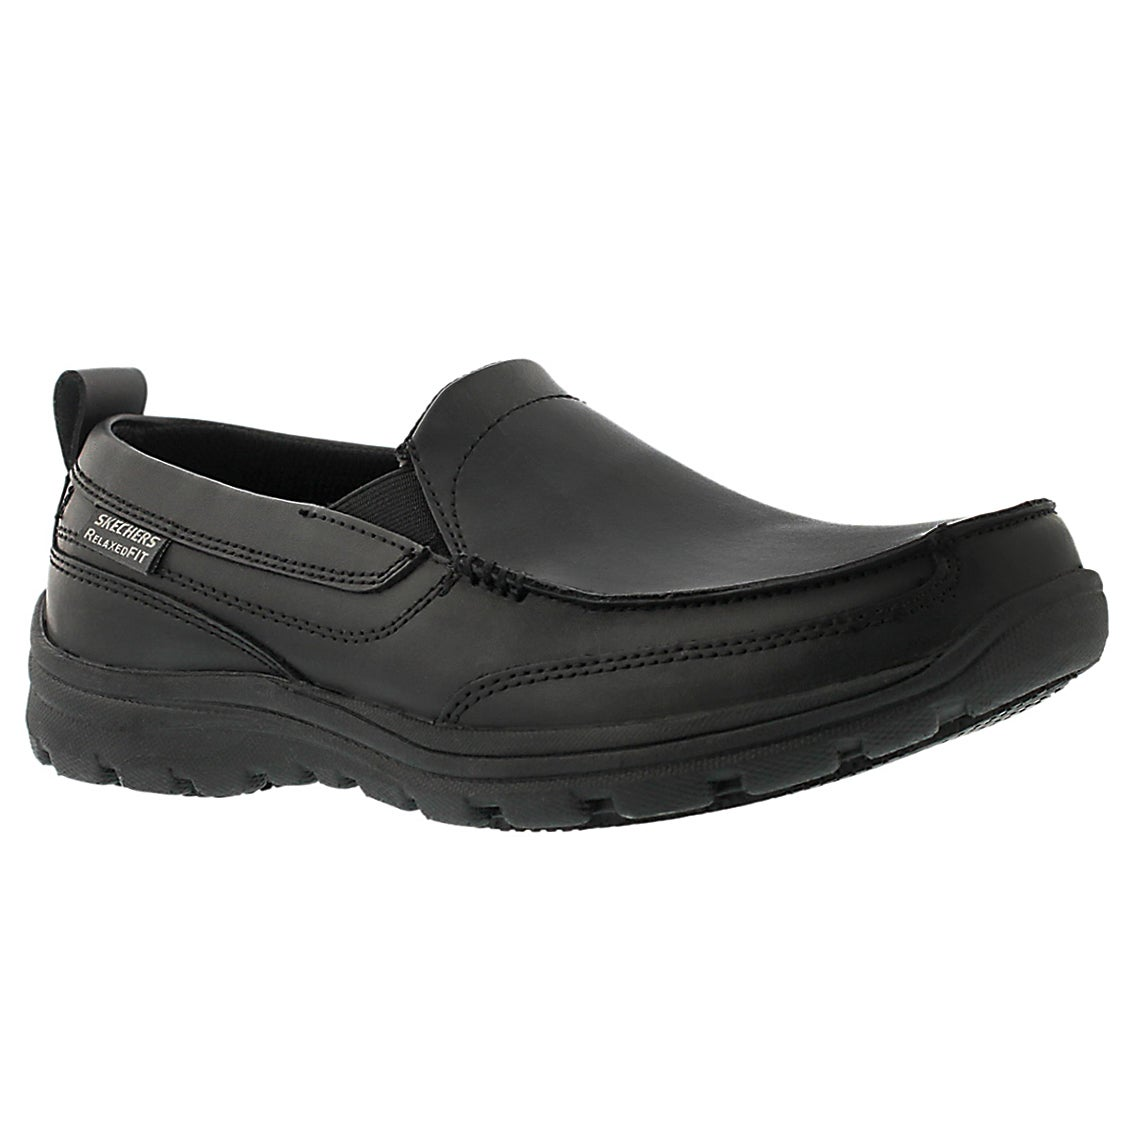 Skechers Mens Dress Shoes Images Chelsea And